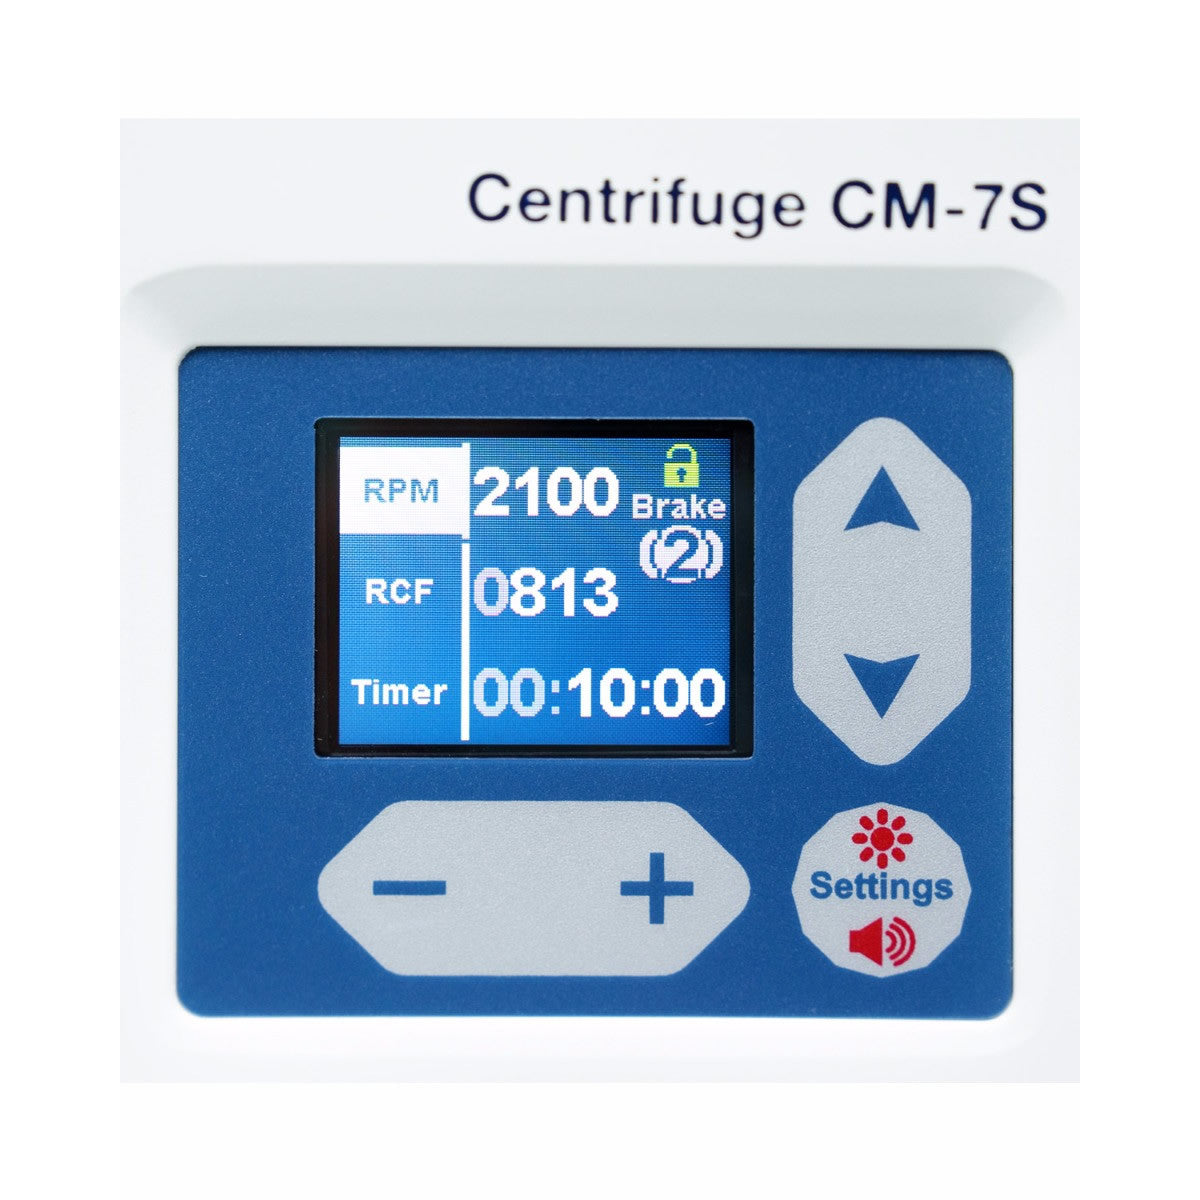 ELMI CM-7S PLUS PRP Advanced Centrifuge | PRP Edition - rotor included